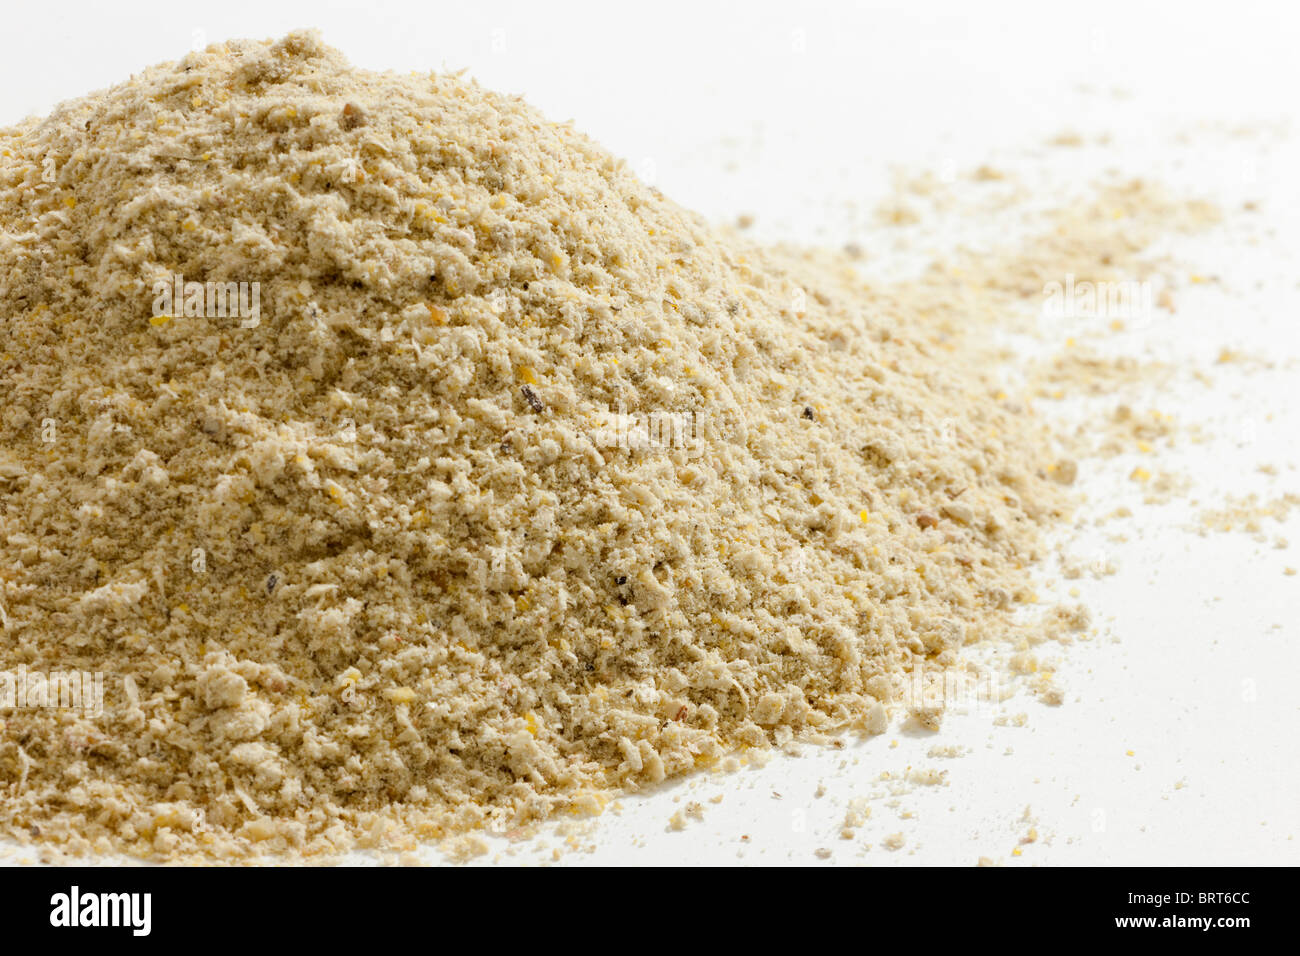 Pile of ground maize maizemeal - Stock Image